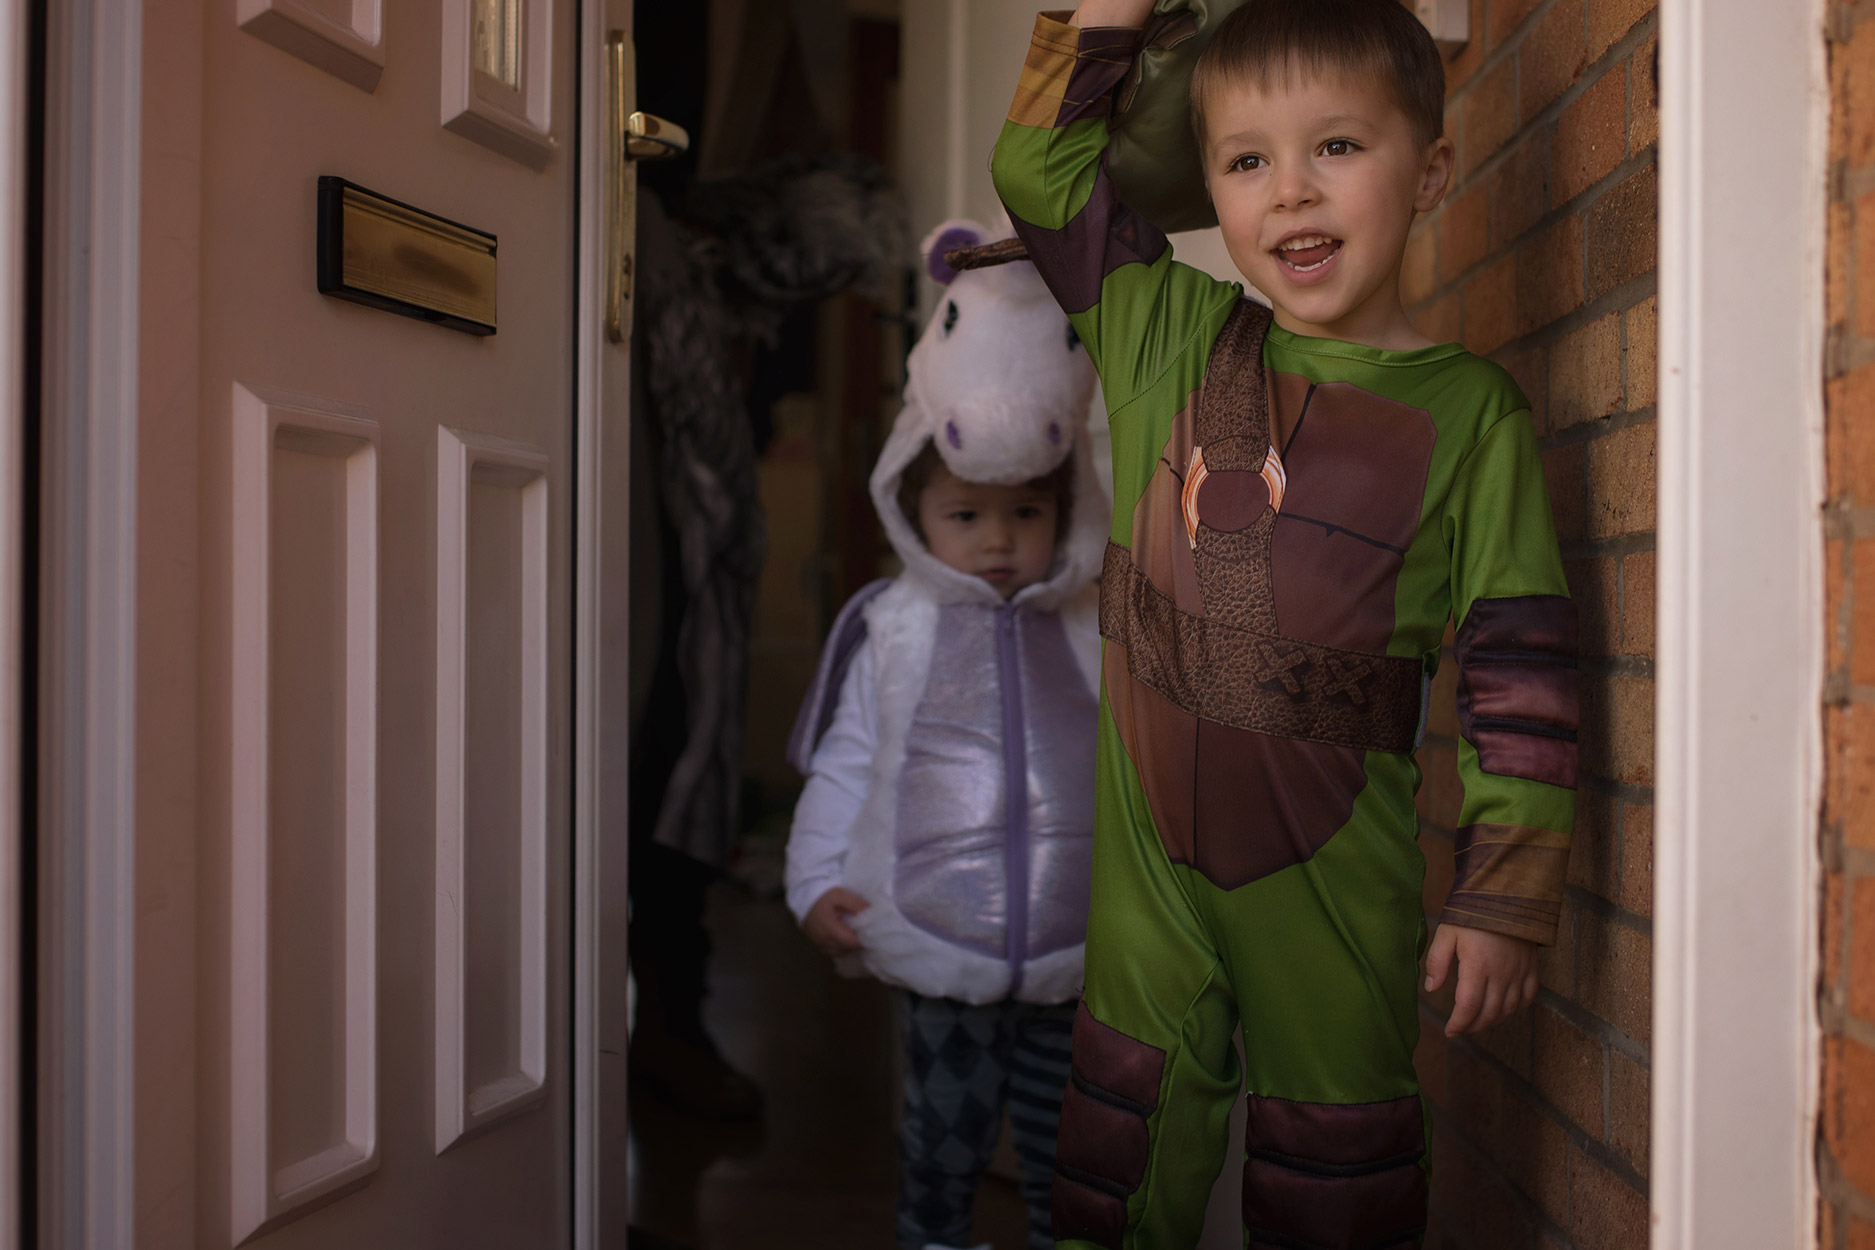 Celebrating halloween with family and boys wearing ninja turtle outfit and unicorn costume